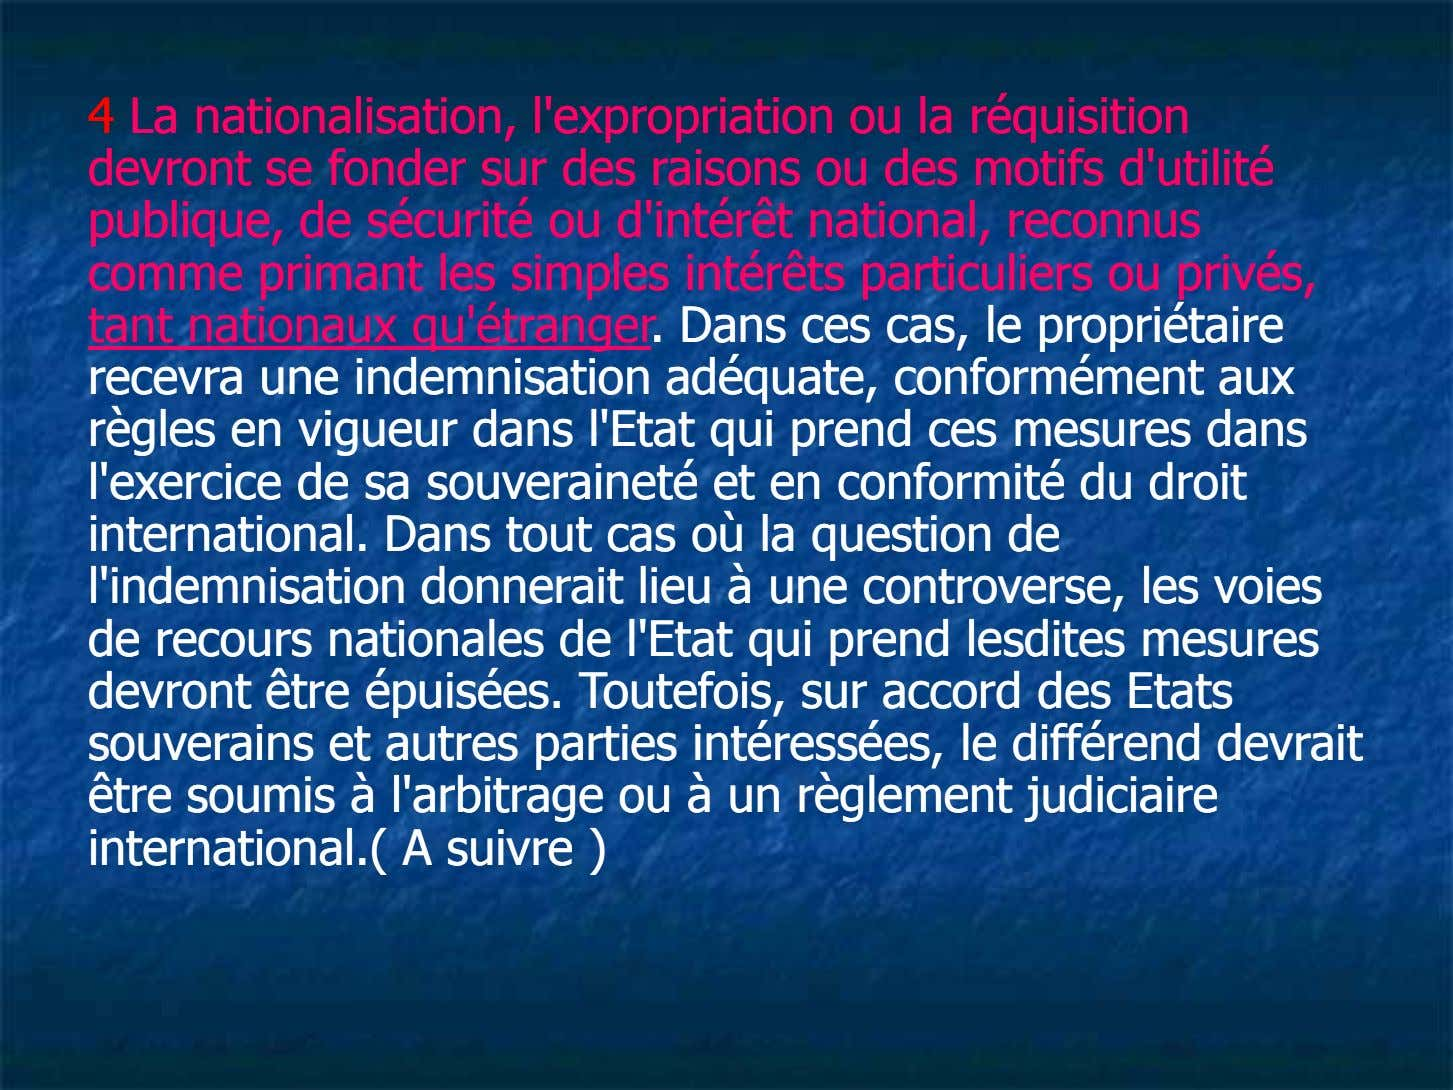 44 LaLa nationalisation,nationalisation, l'expropriationl'expropriation ouou lala réquisitiréquisitionon